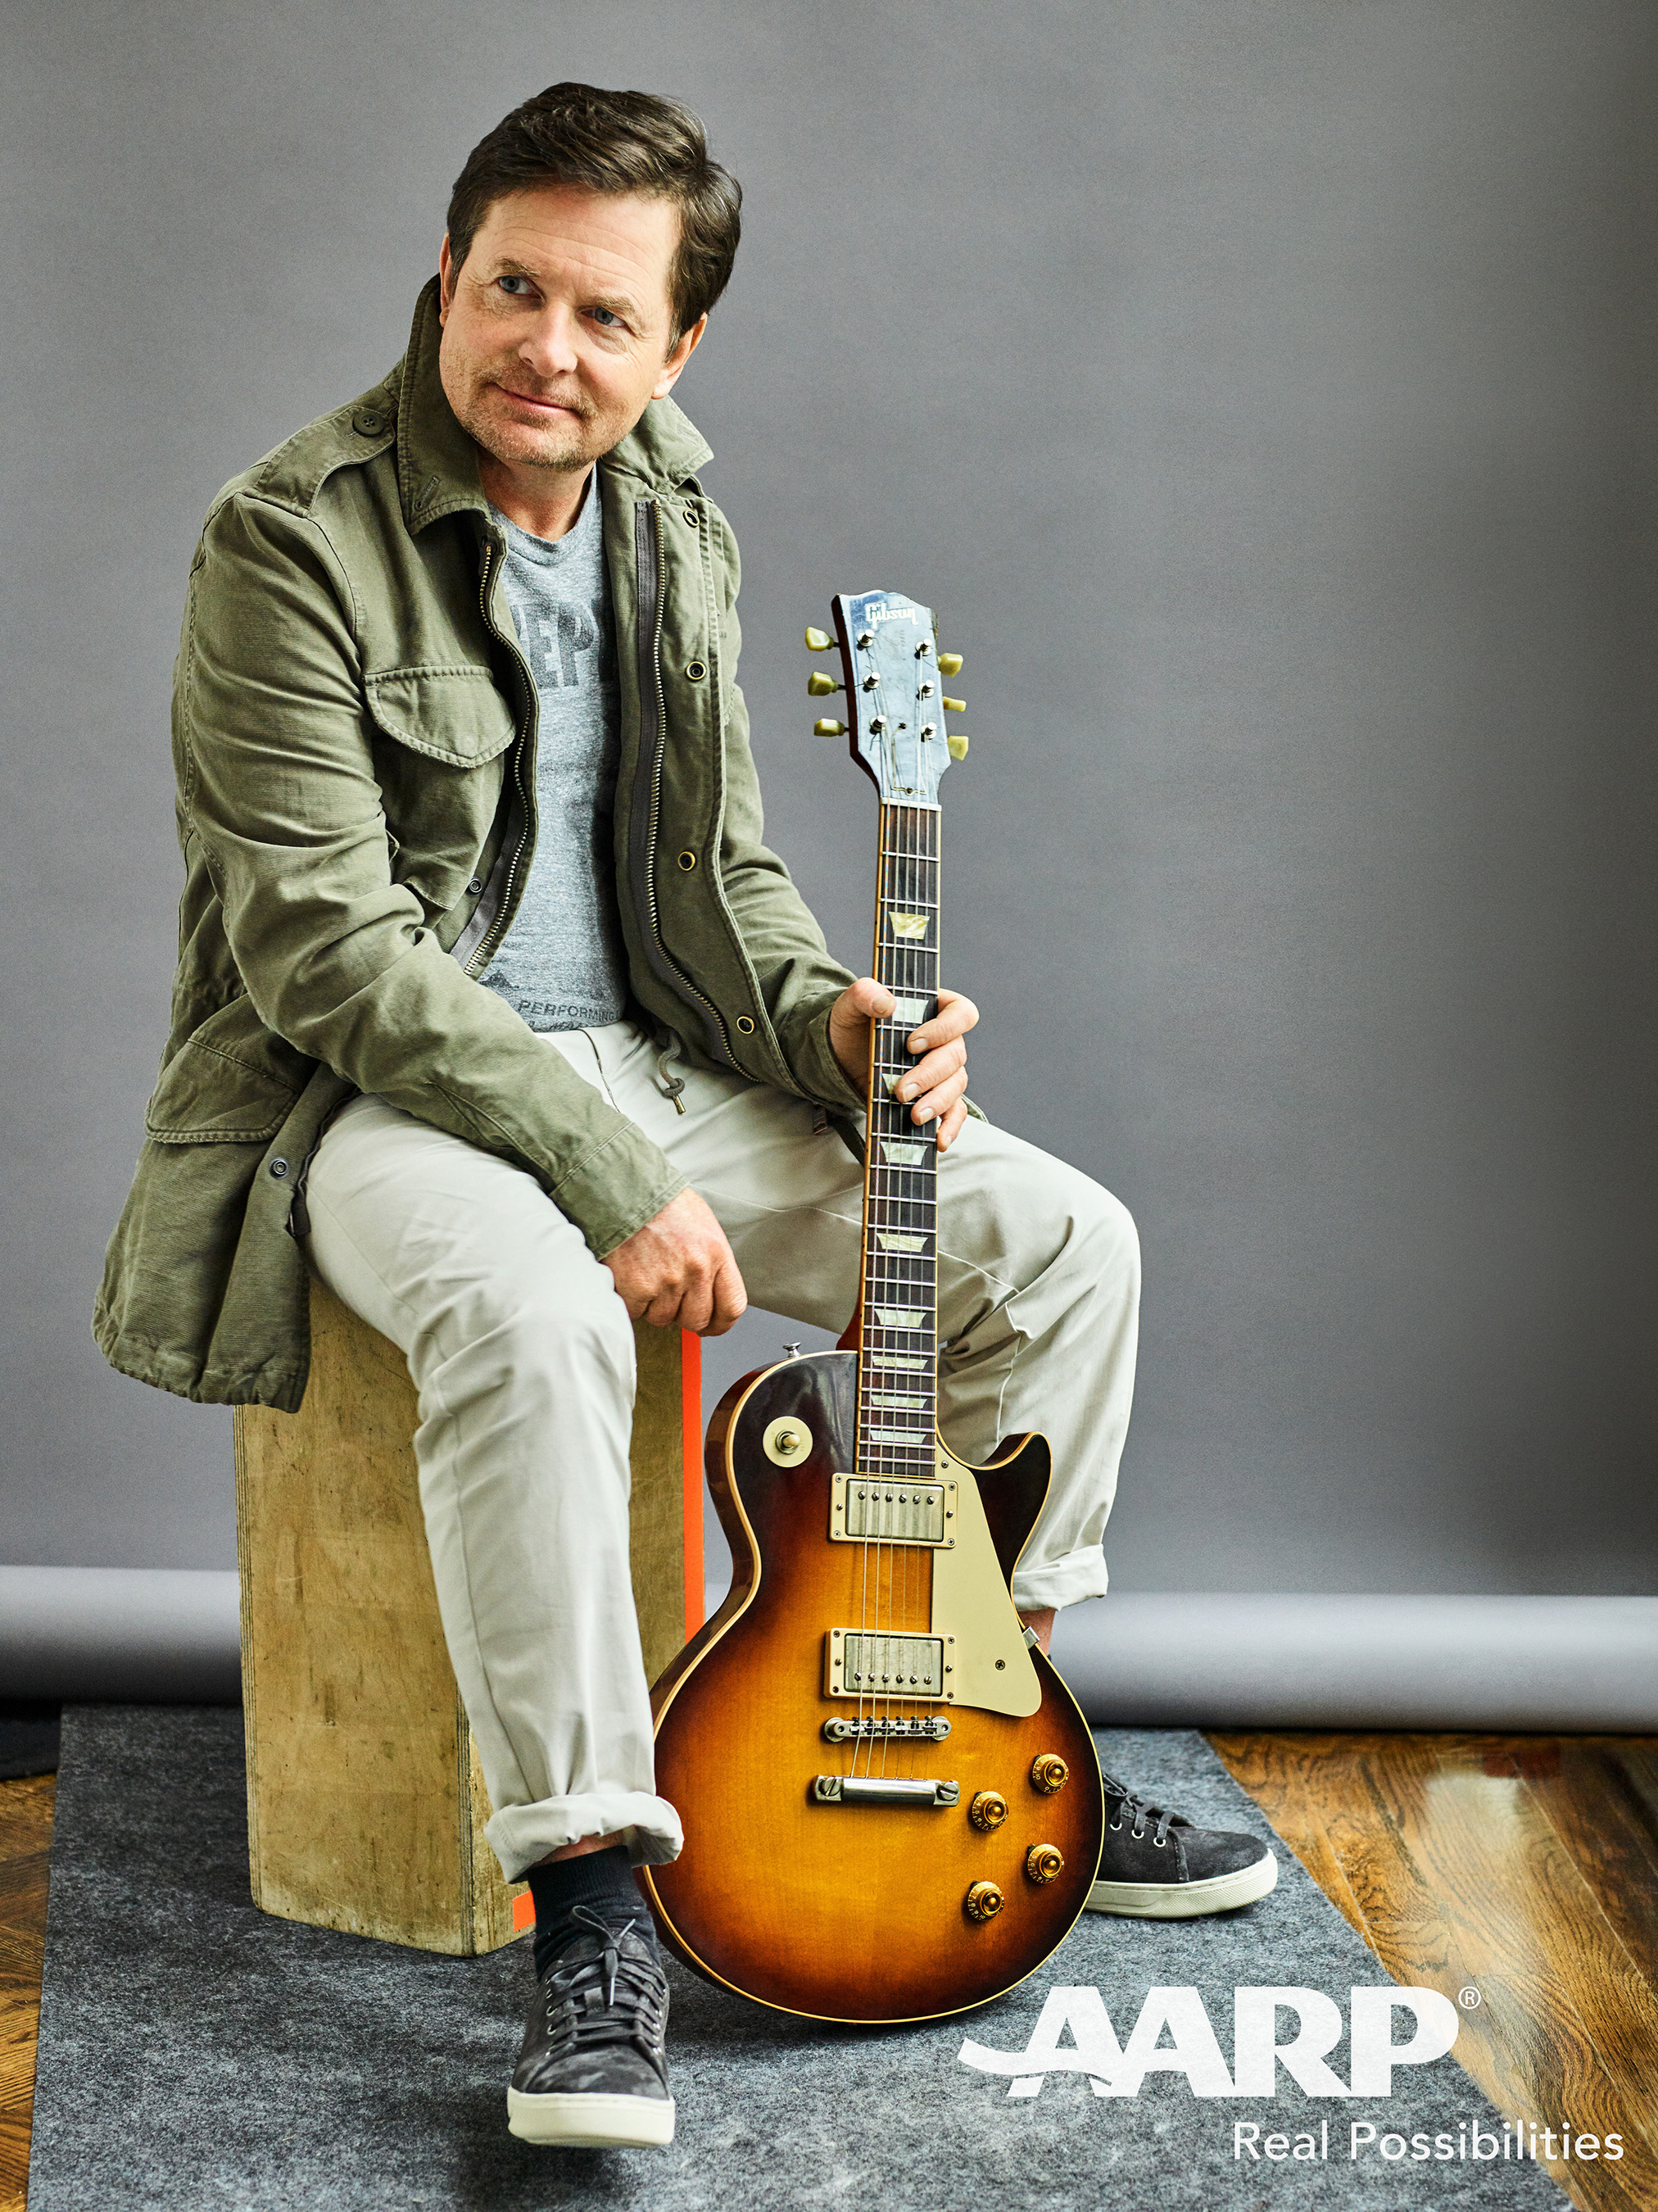 Beating The Odds Michael J Fox Is Still Laughing